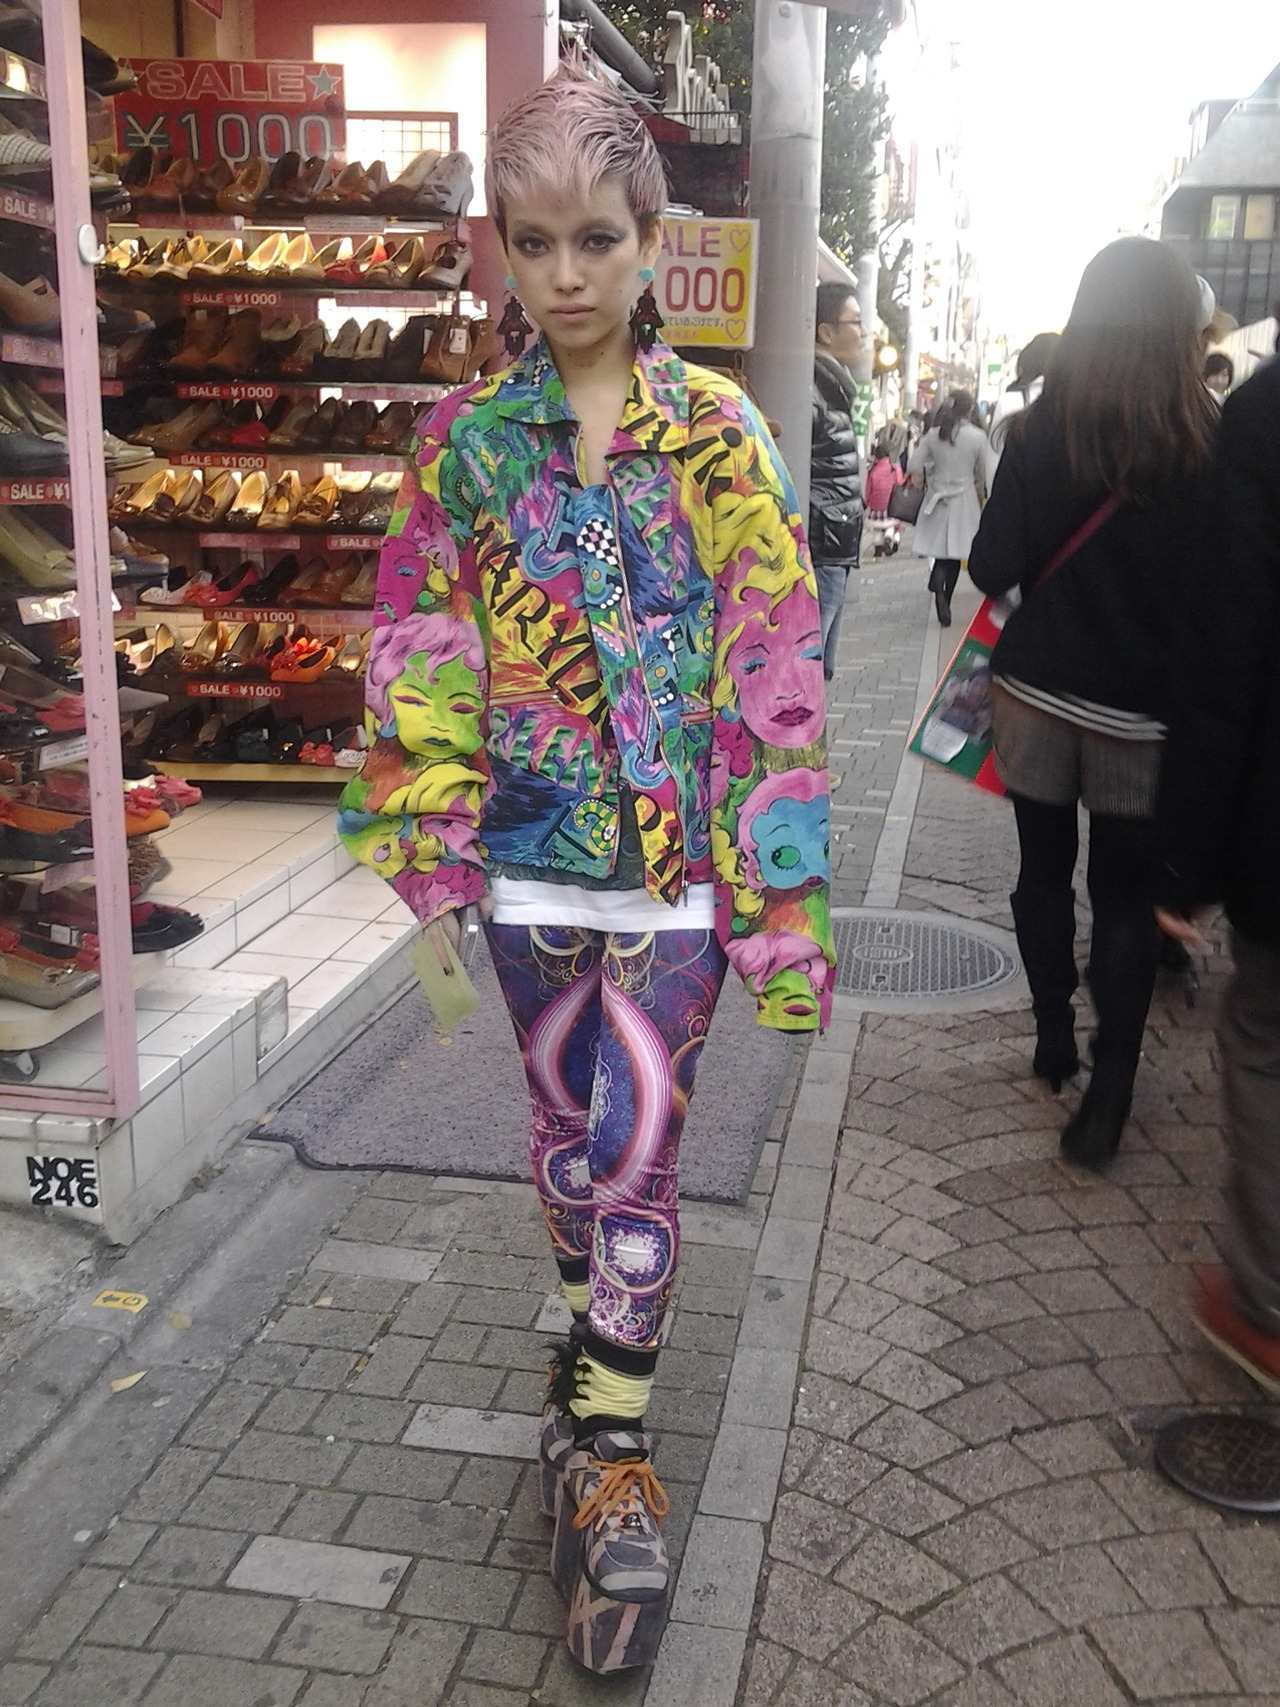 pastelstars:  Today i met Ikeda Hirari on Takeshida street! My heart stopped for a second when I spoke  to her, she was so cute and sexy at the same time! And she was so tiny omg, she was smaller than me (158 cm)  when wearing those shoes! I've met so many cool people in Tokyo, but for Hirari my kokoro went doki doki